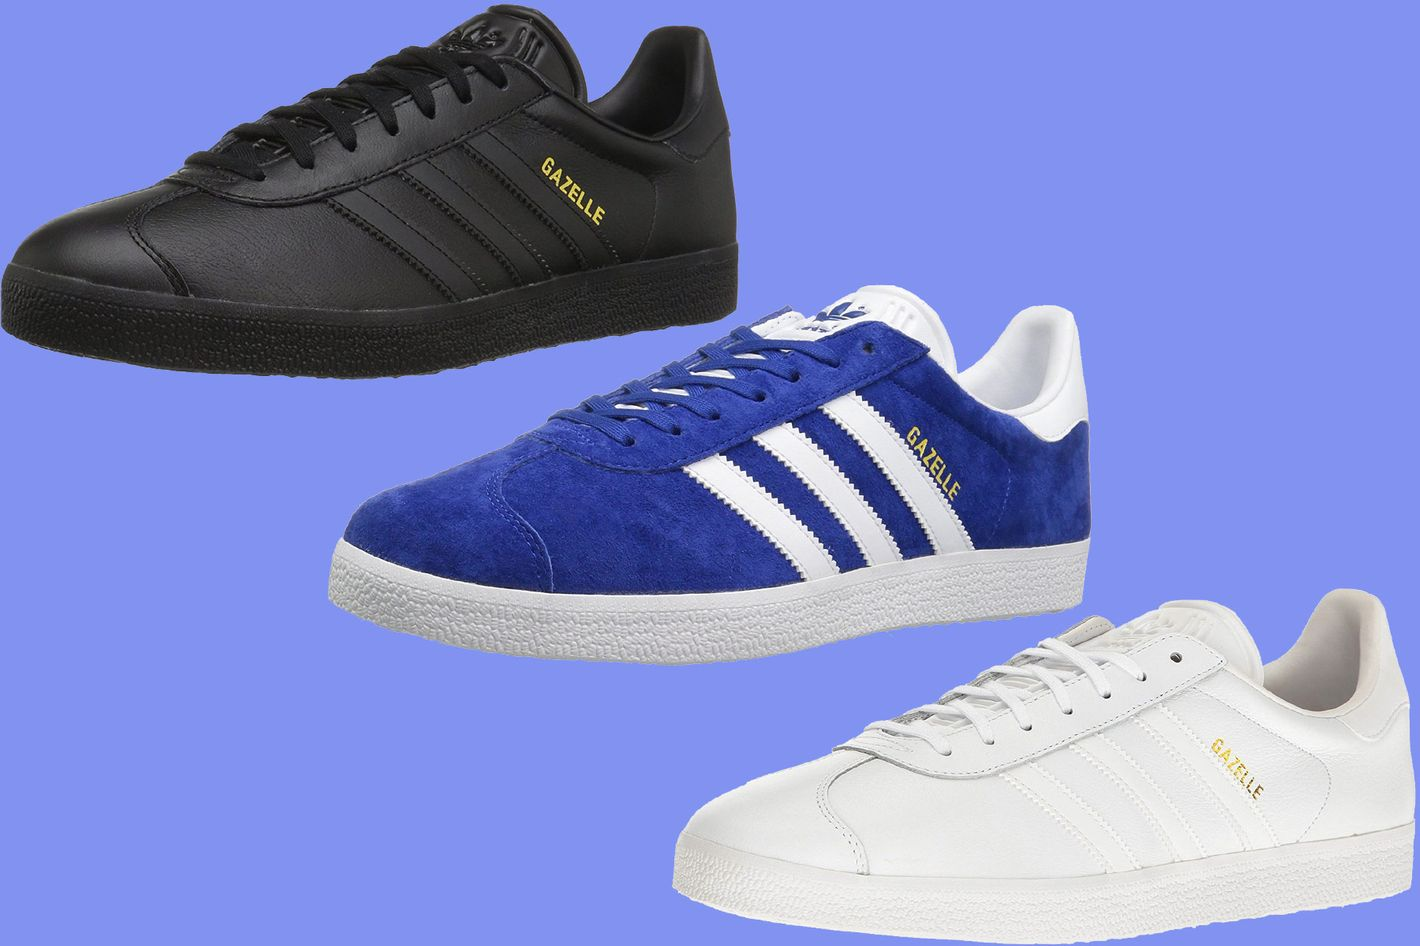 best website 22082 1a429 Adidas Sneakers - Adidas Gazelles